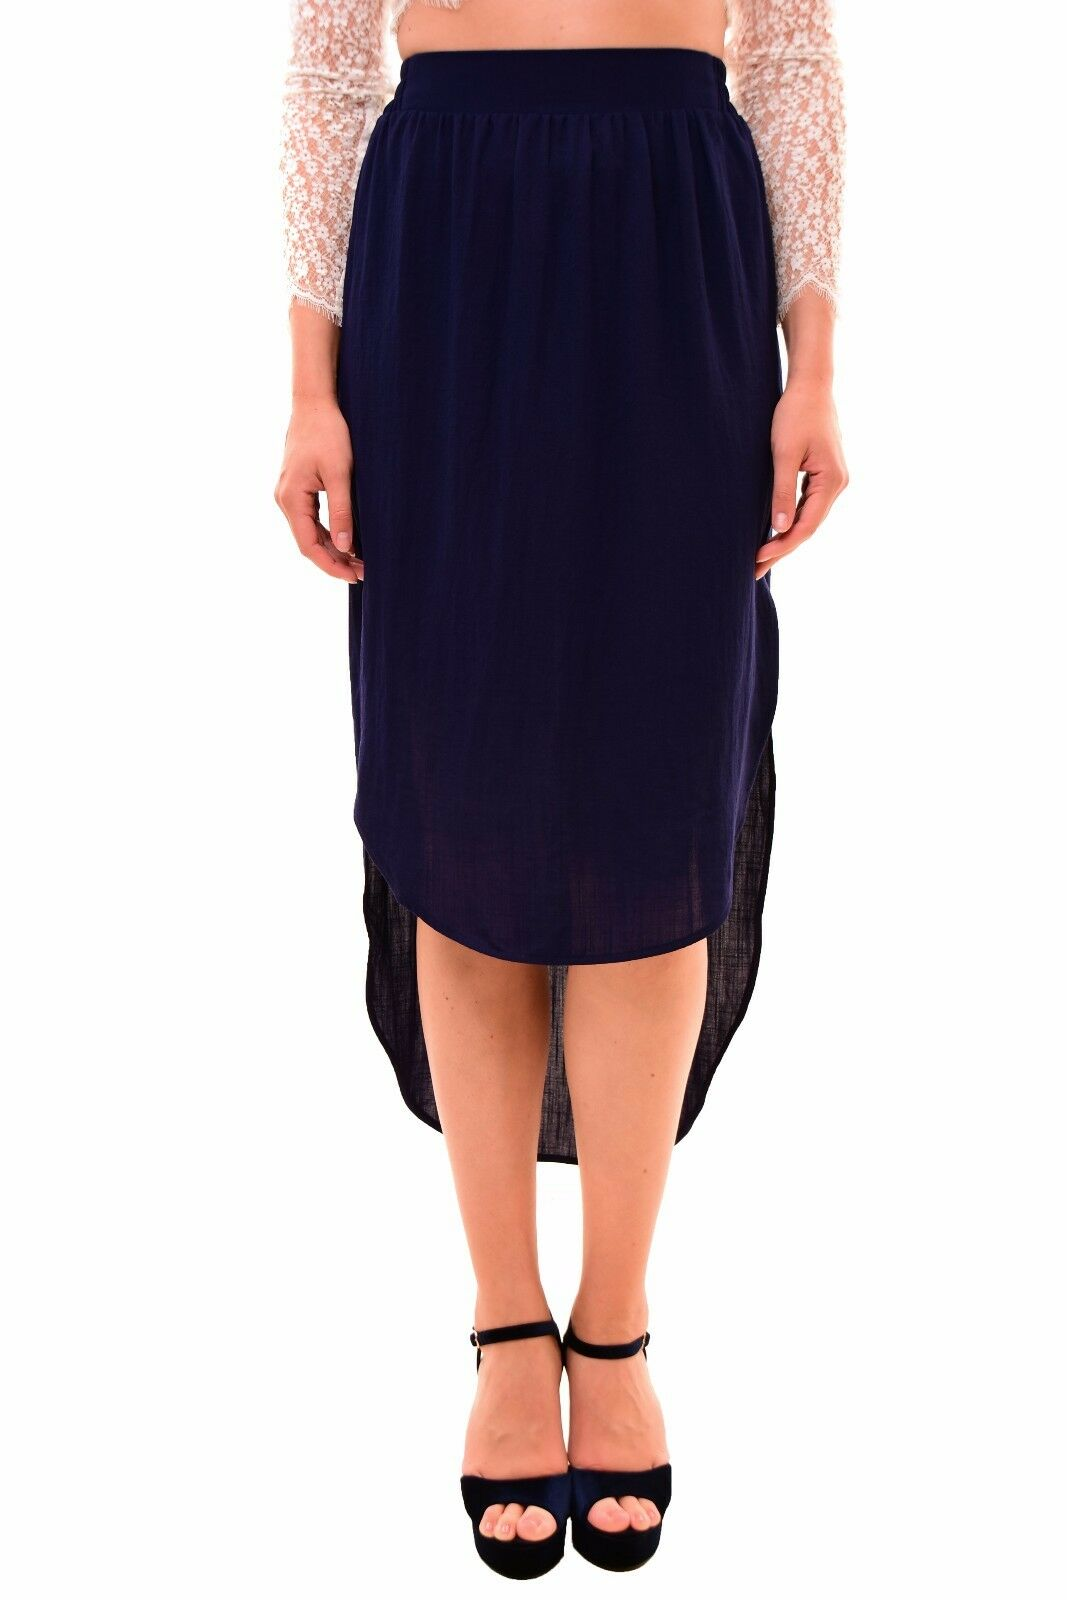 Finders Keepers Beautiful Cute Unique  Mason Skirt Navy S RRP  165 BCF710